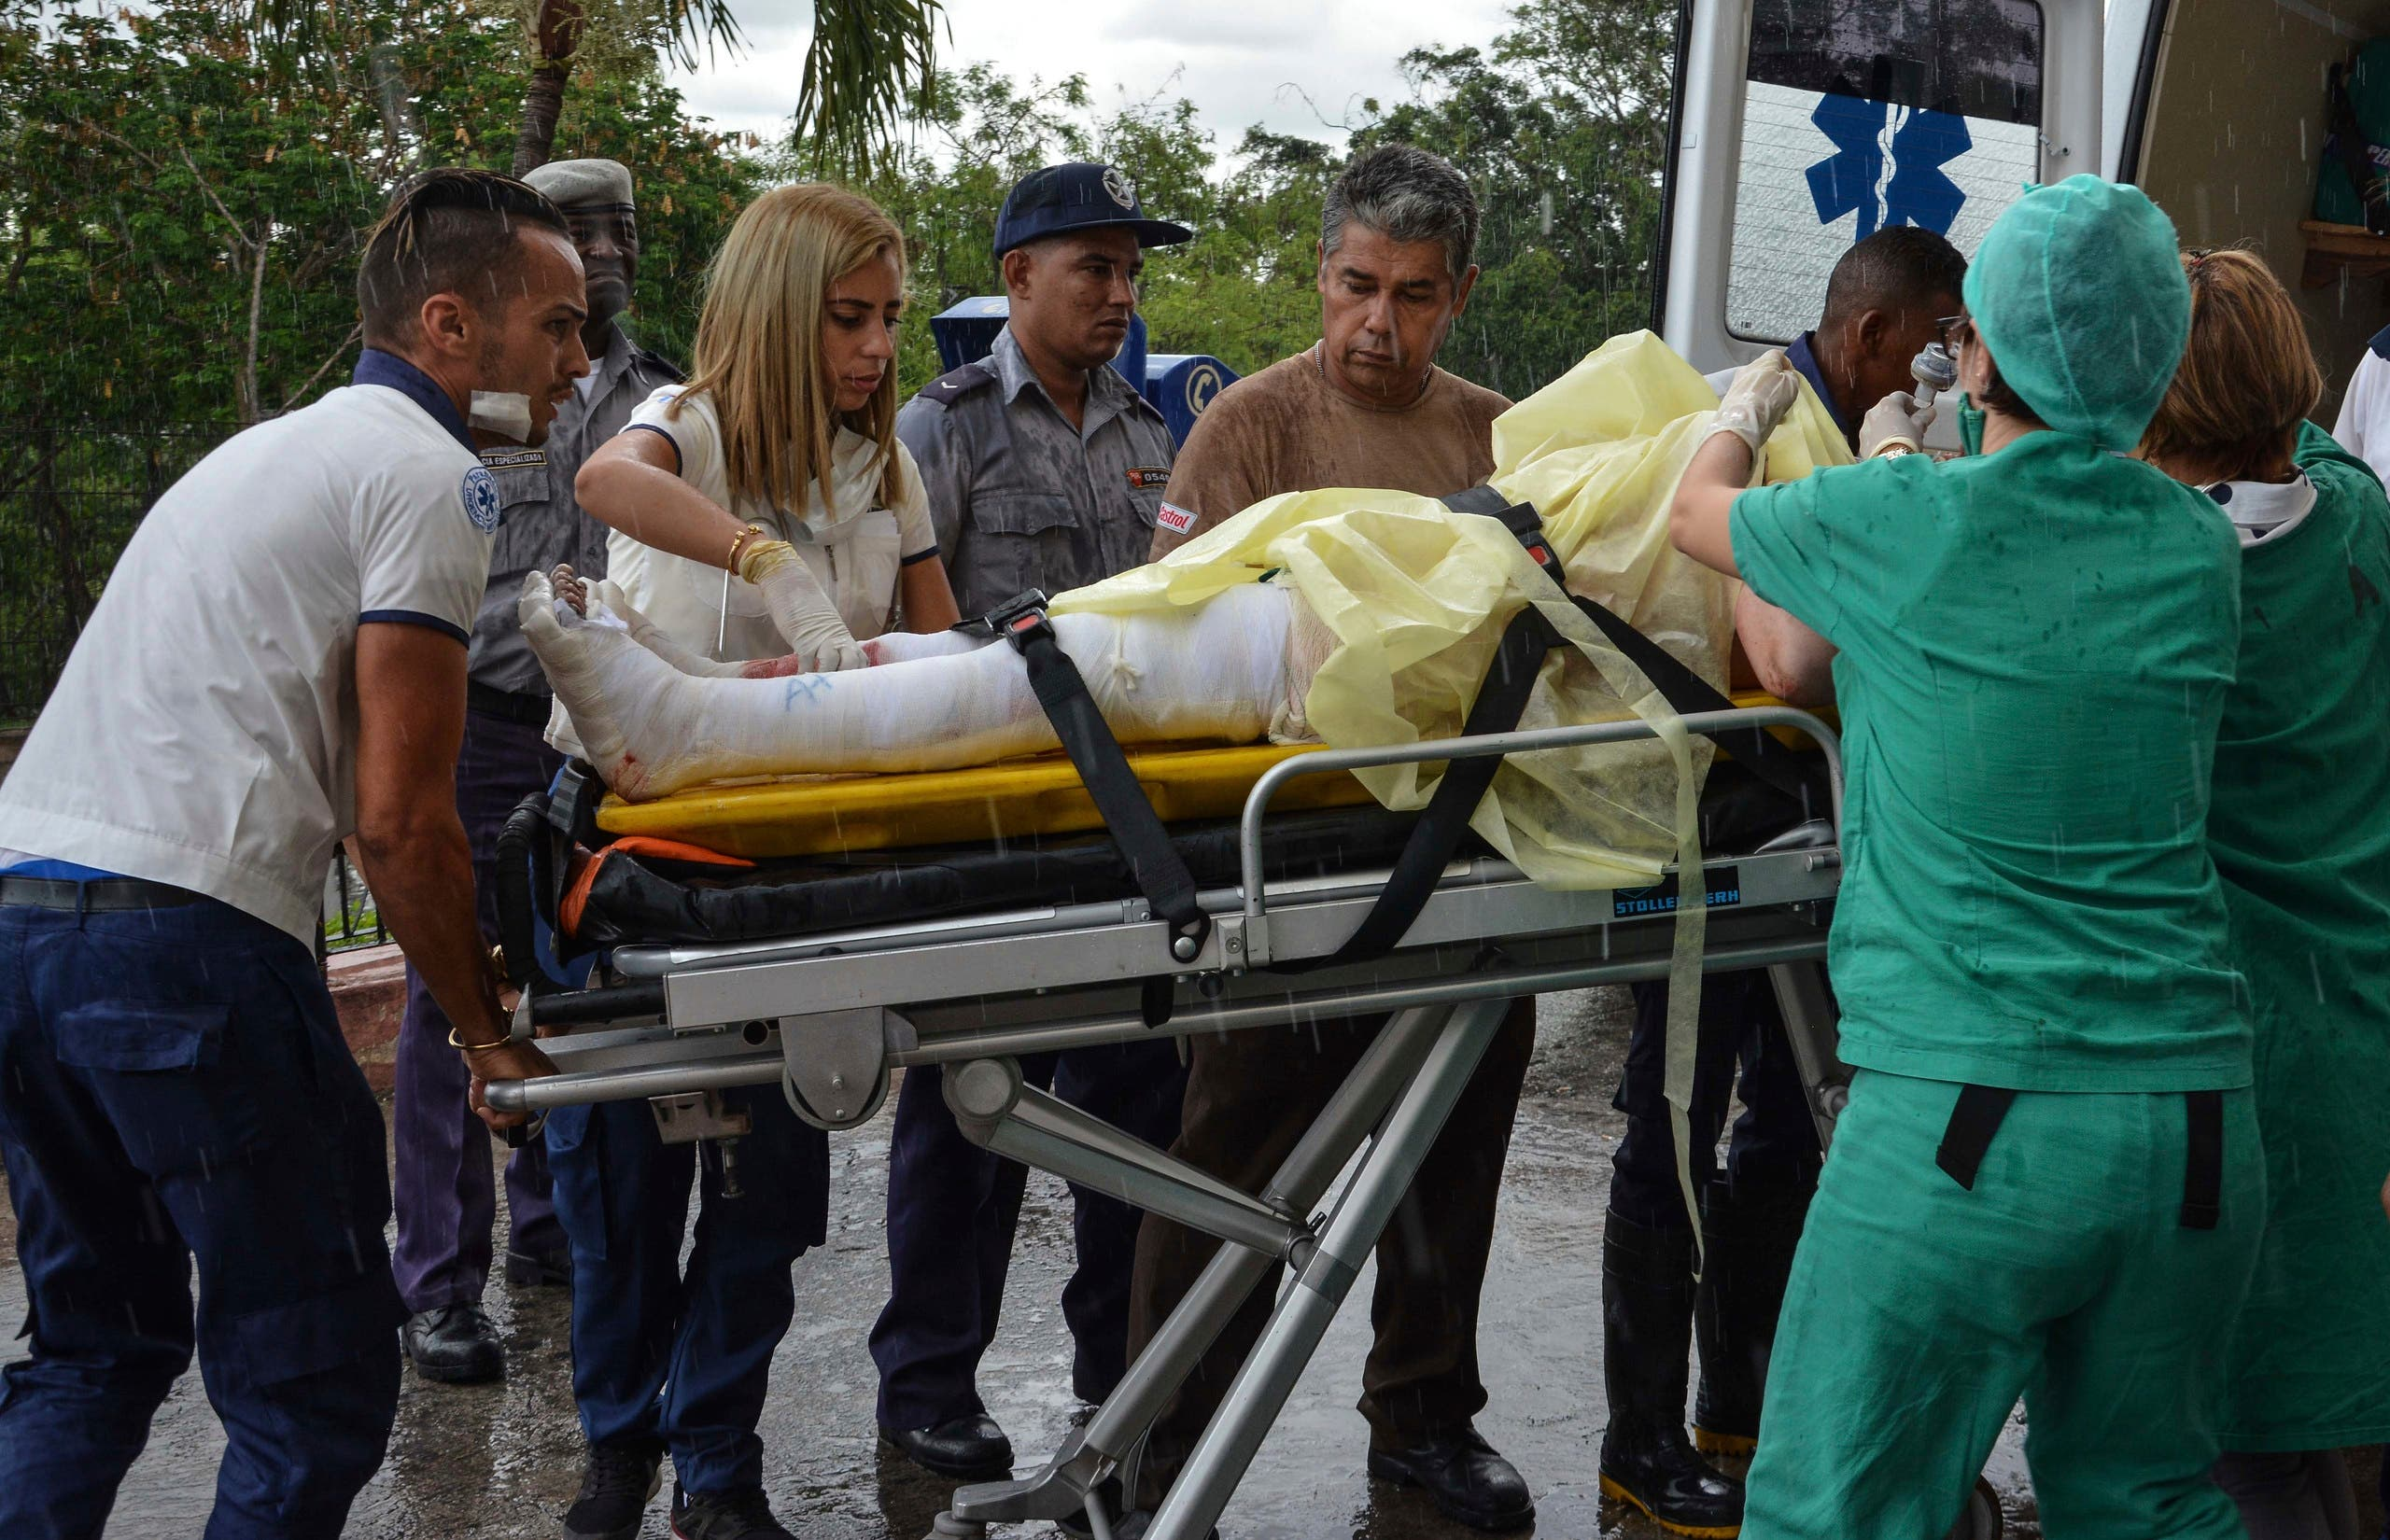 The few surviving passengers of an airliner that crashed arrive at the Calixto Garcia General Hospital in Havana, Cuba, Friday, May 18, 2018. The 39-year-old airliner with 110 people aboard crashed and burned in a cassava field just after takeoff from the Havana airport, leaving three survivors in Cuba's worst aviation disaster in three decades, officials say. (Marcelino Vazquez Hernandez/ACN via AP)